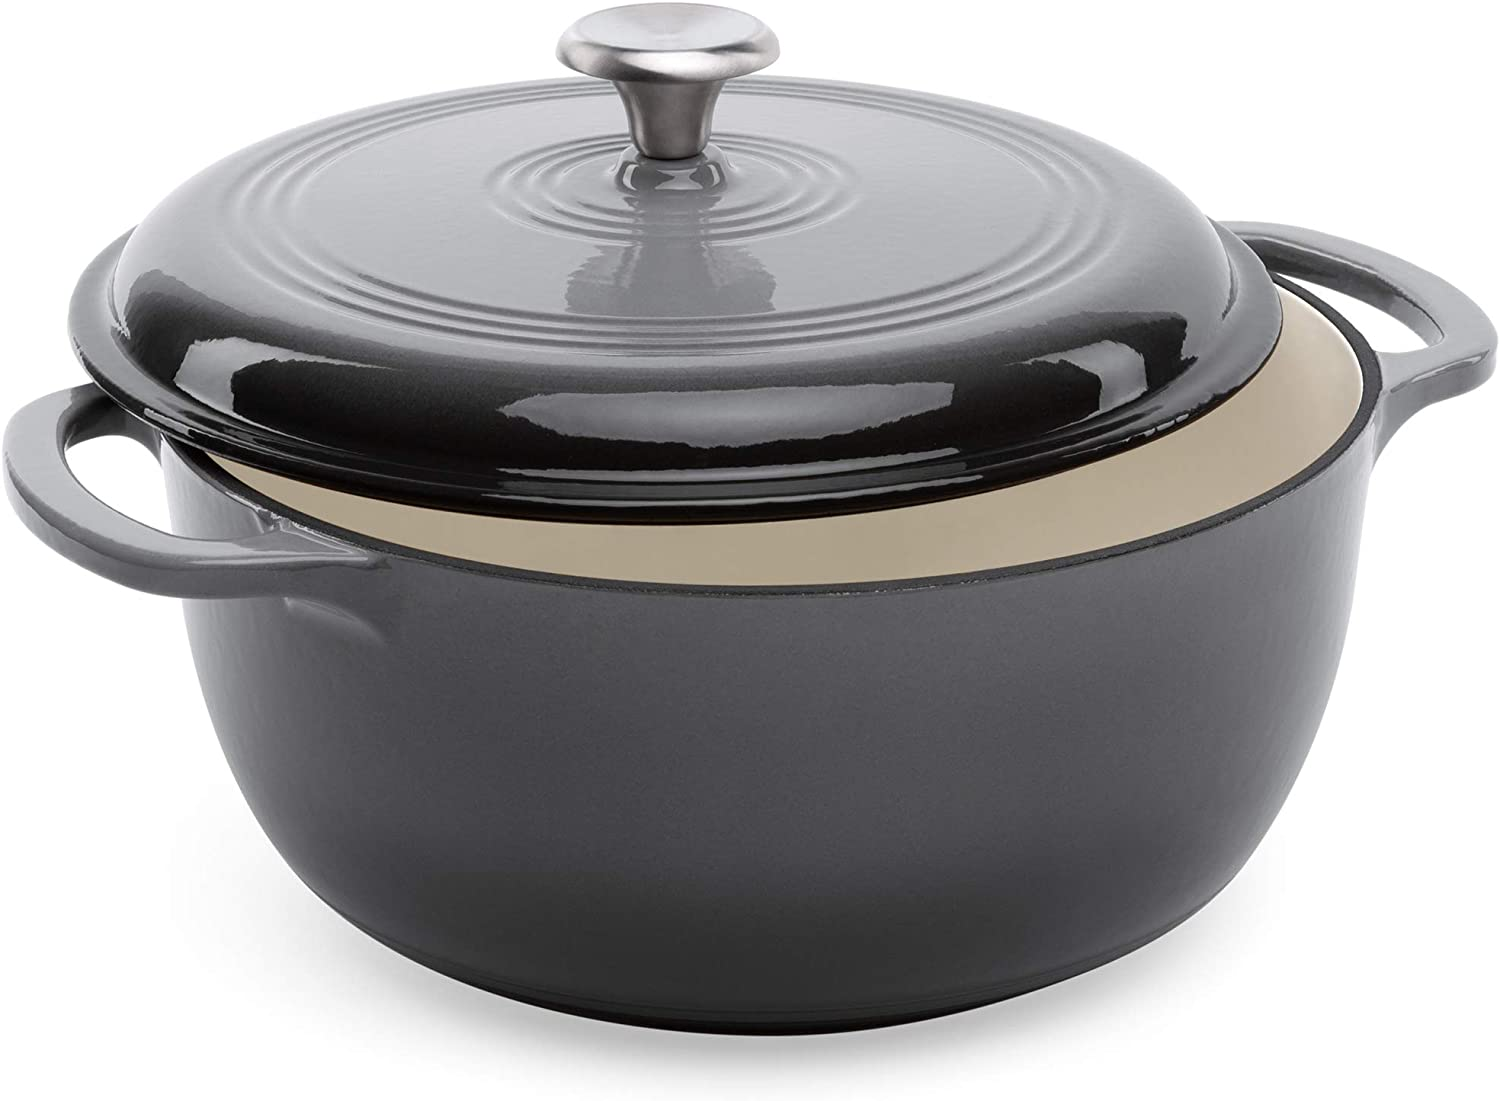 Best Choice Products 6qt Non-Stick Enamel Cast-Iron Dutch Oven for Baking, Braising, Roasting w/Side Handles - Gray